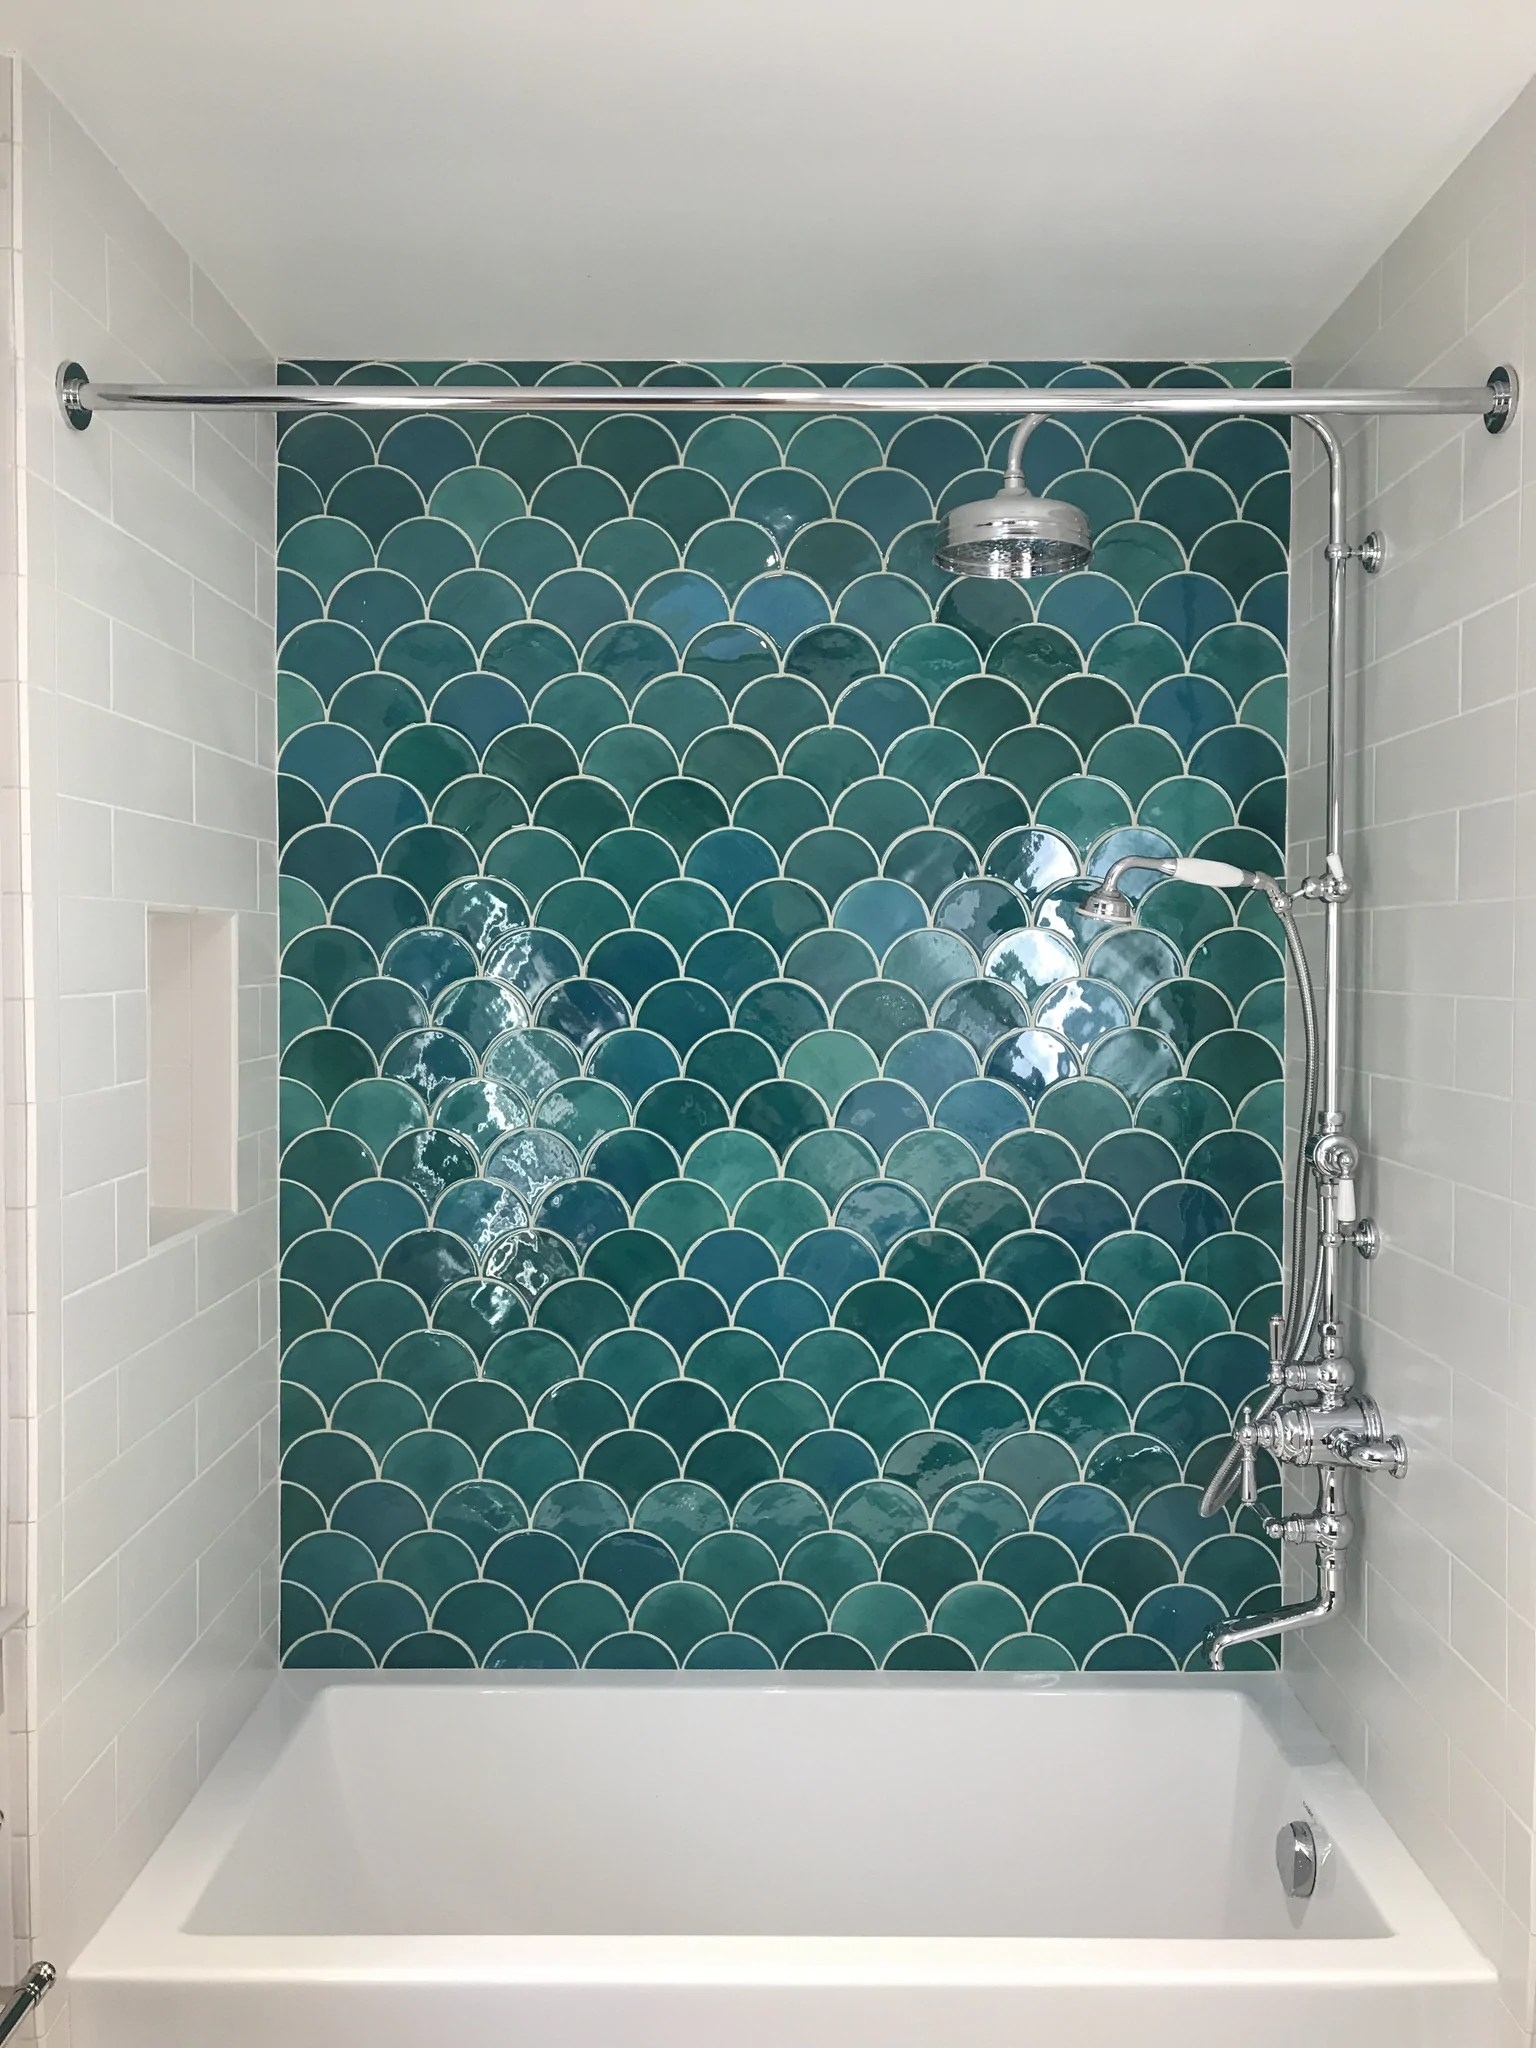 Mermaid Scale Shower Curtain 11 Ways To Use Fish Scale Mosaics Wall Tile Pattern Ideas